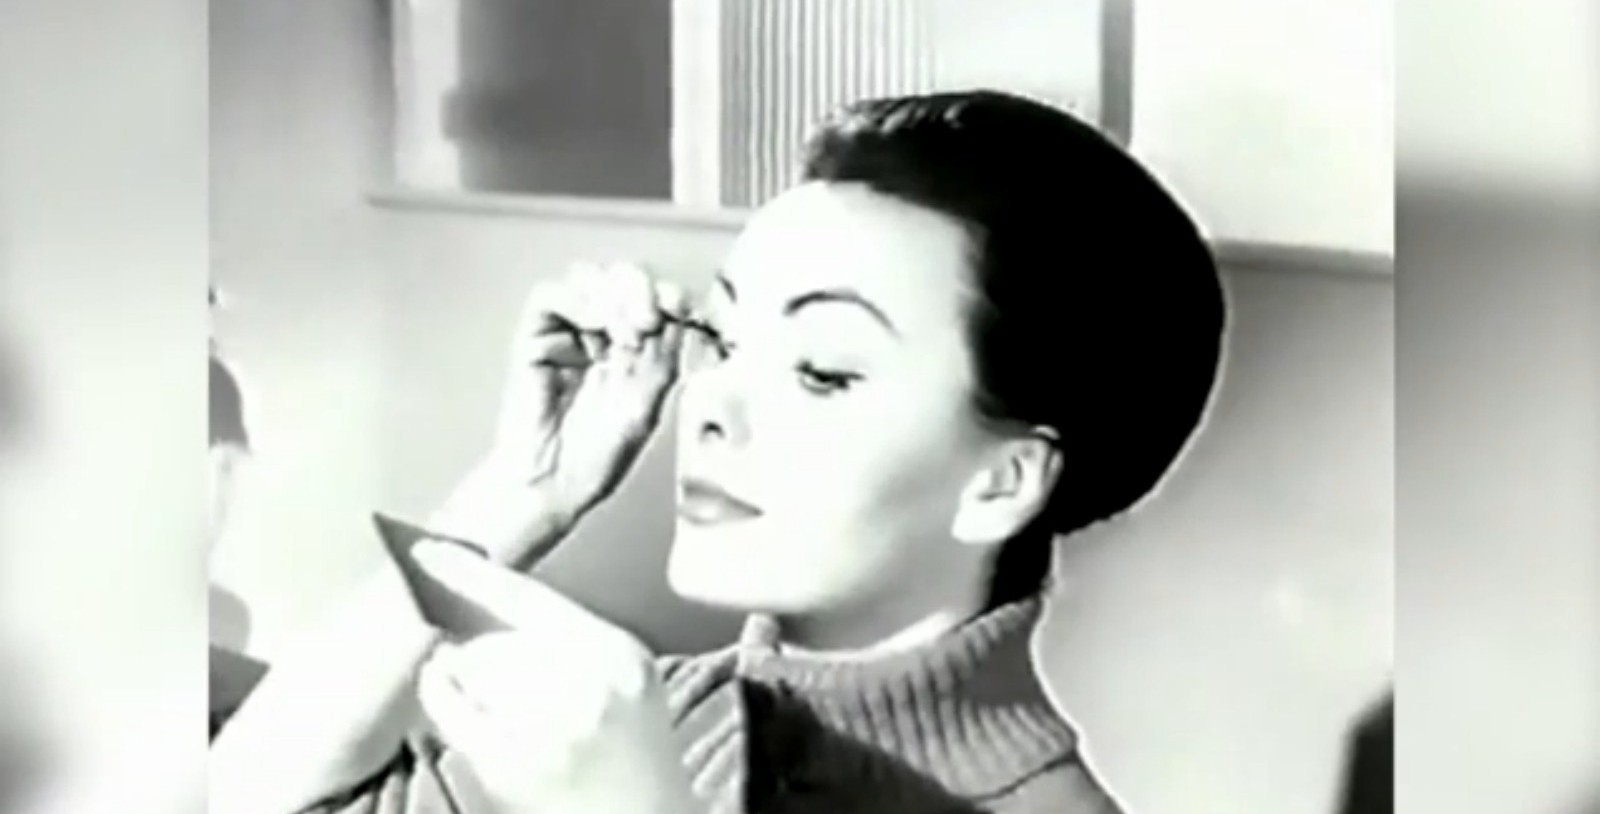 Go Gay hair lacquer, Madam? Beauty regimes have changed a bit over the last 50 years